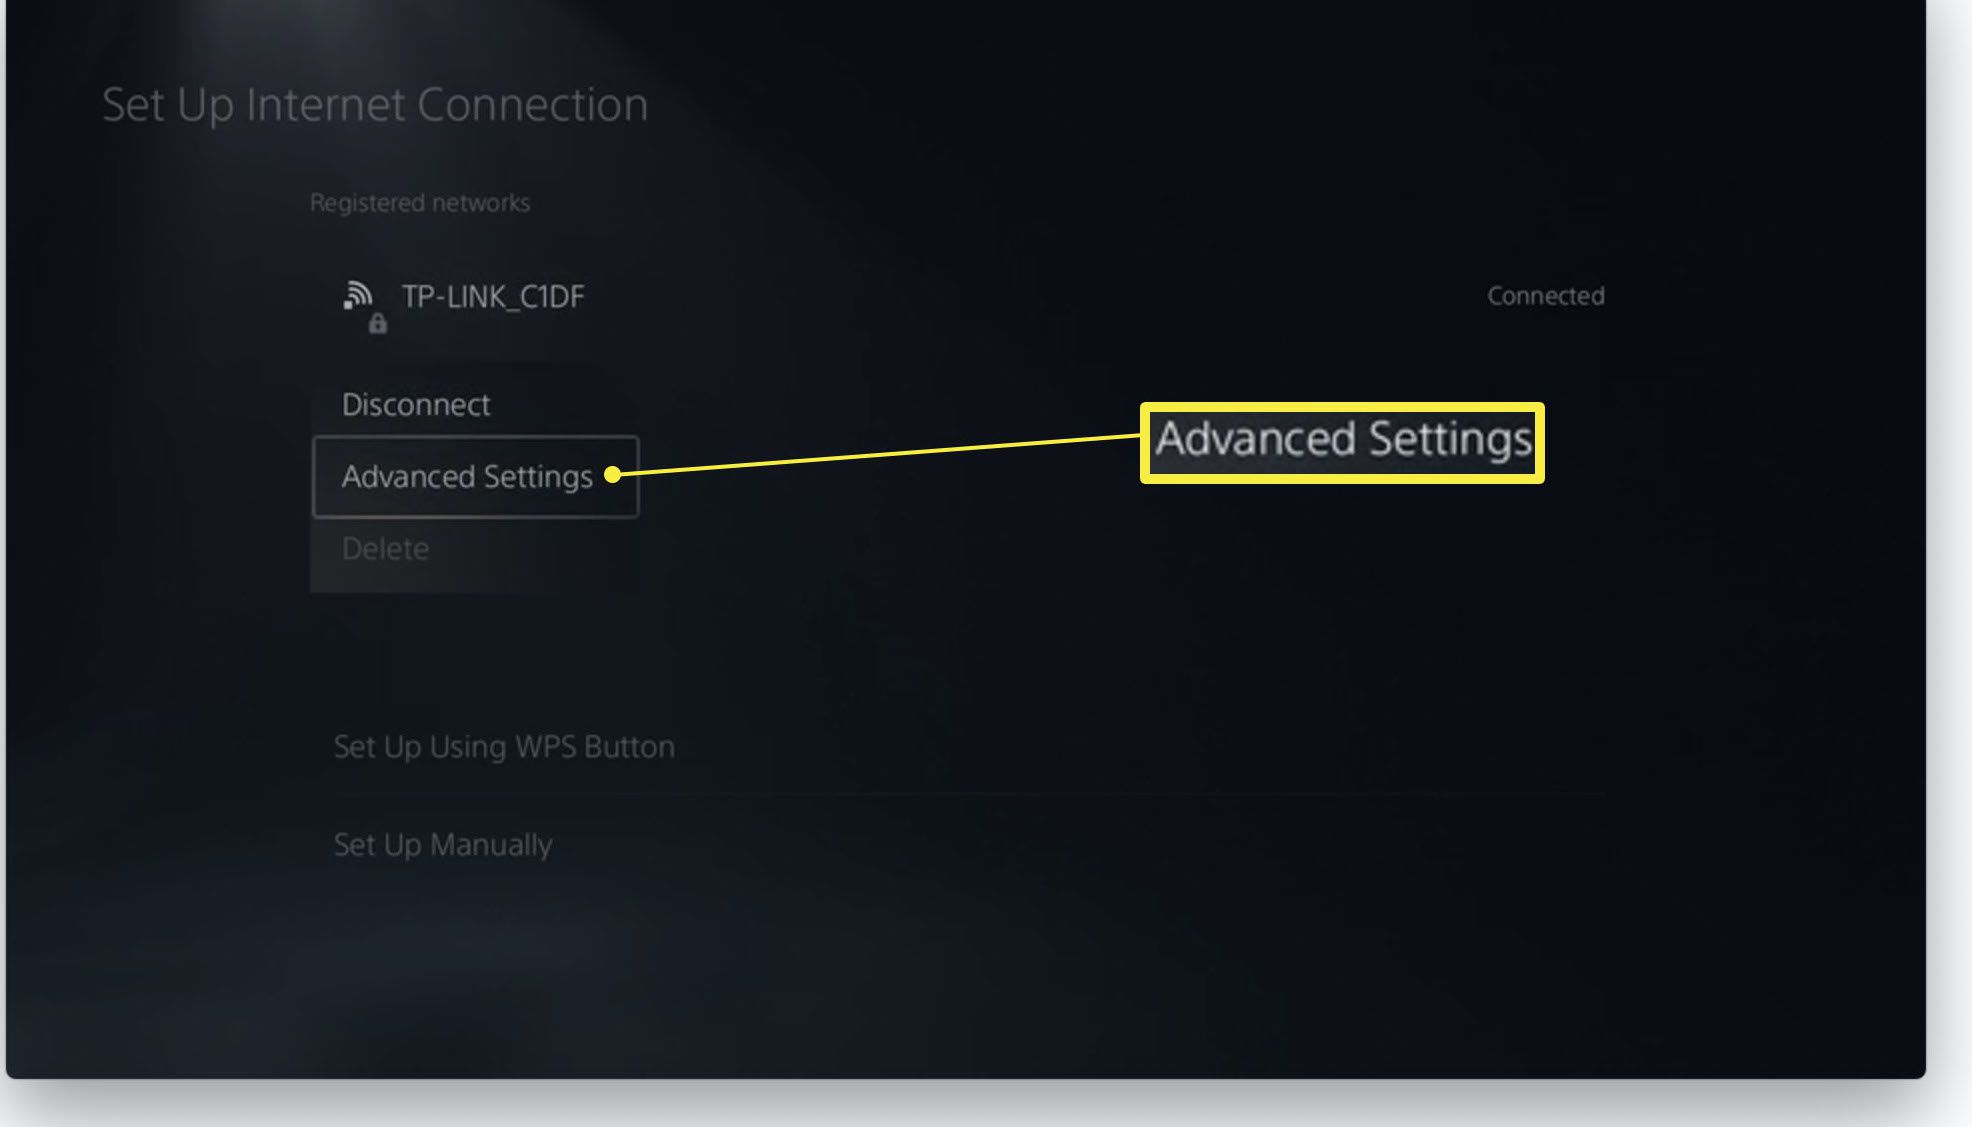 PlayStation 5 with Set Up Internet Connection Advanced Settings highlighted